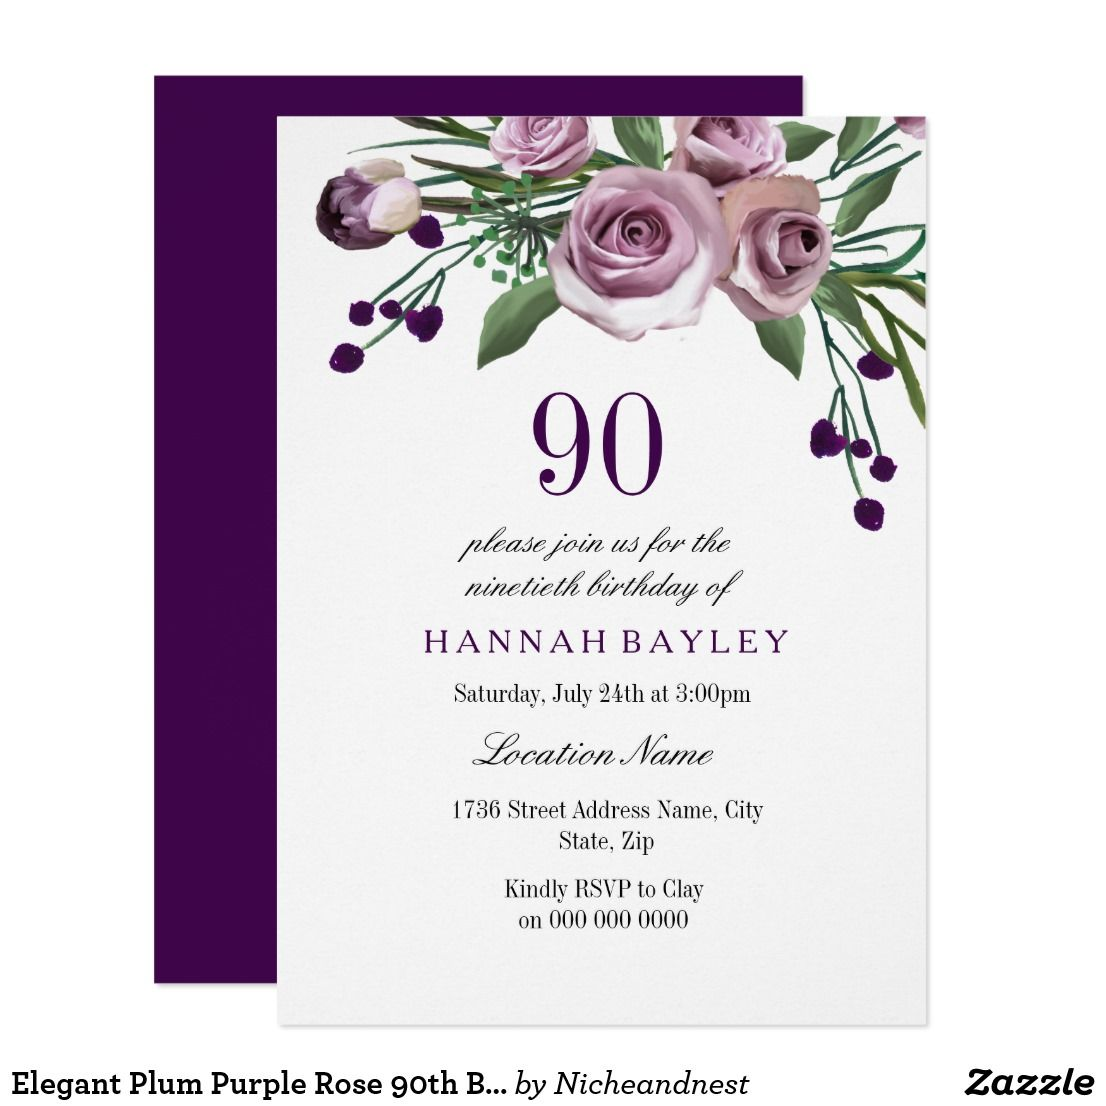 Floral 90th birthday invitation pink watercolor floral 90th birthday floral 90th birthday invitation pink watercolor floral 90th birthday invitation pink watercolor flower for further izmirmasajfo